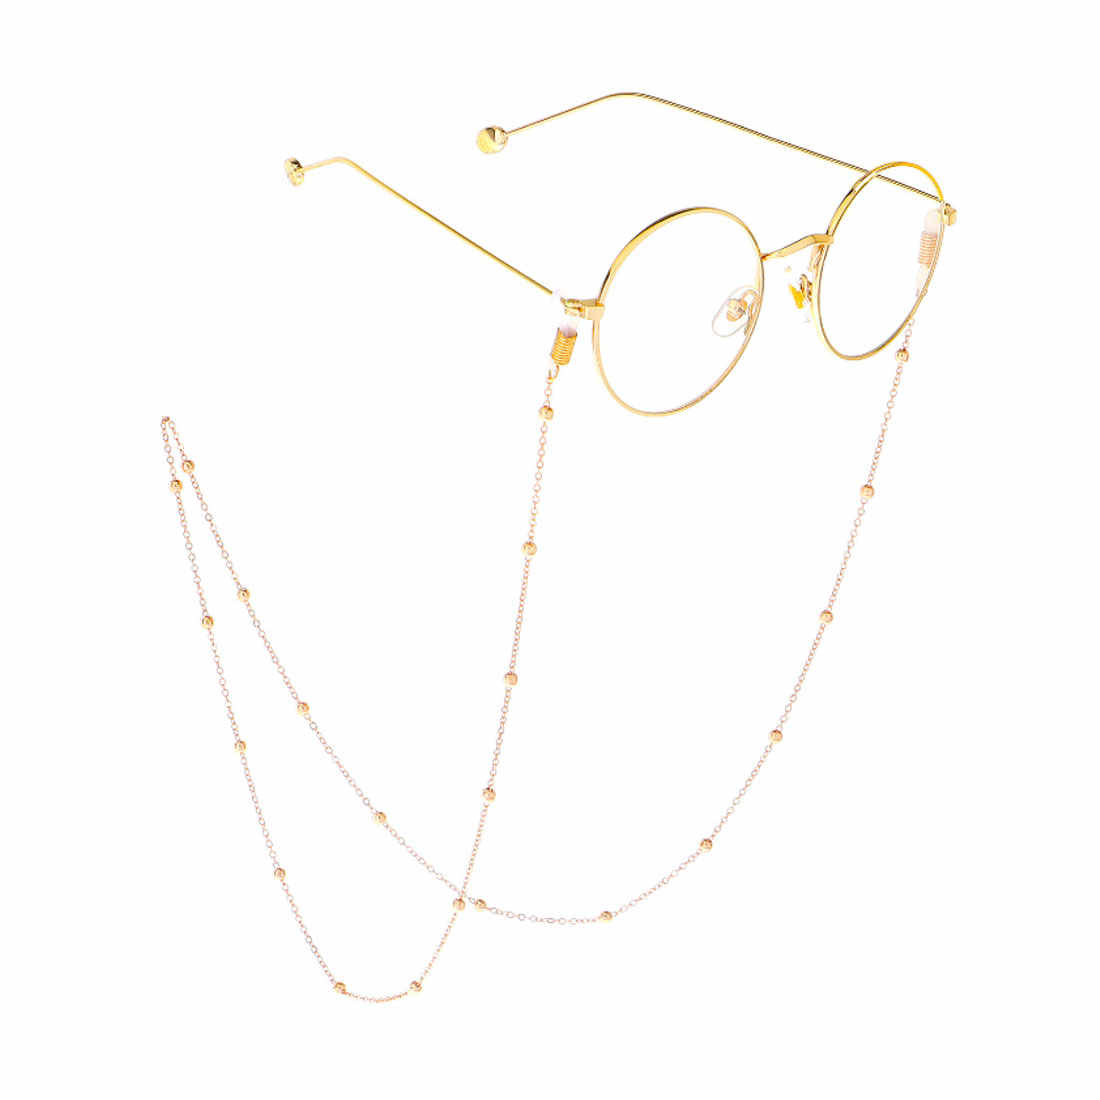 Fashion Reading Glasses Chain for Women Metal Sunglasses Cords Beaded Eyeglass Lanyard Hold Straps Gold silver Eyewear Retainer